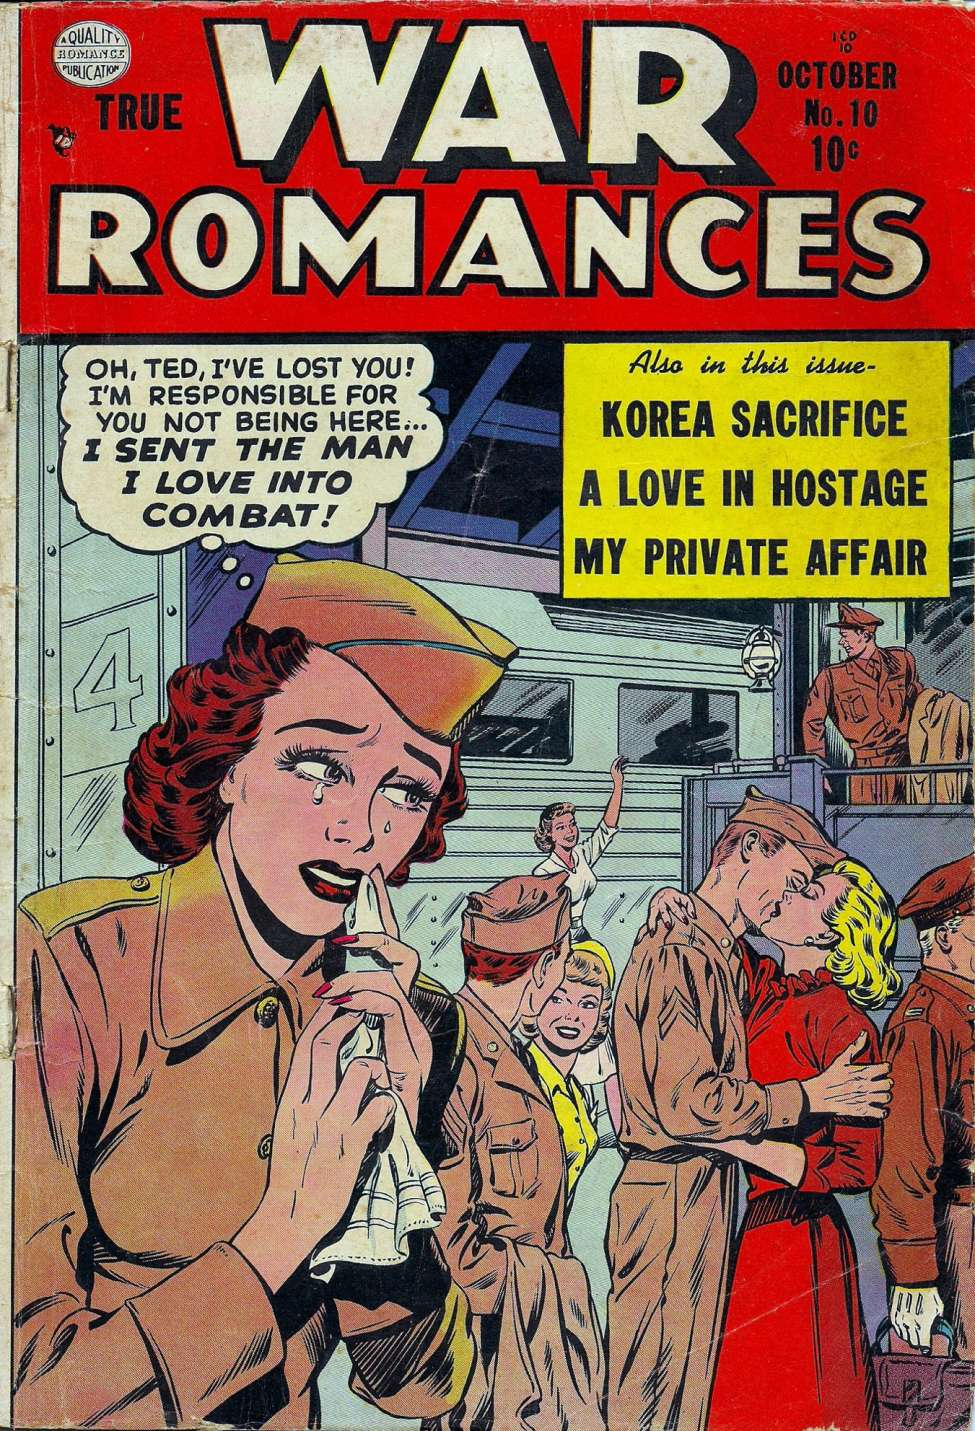 True War Romances #10, Quality Comics